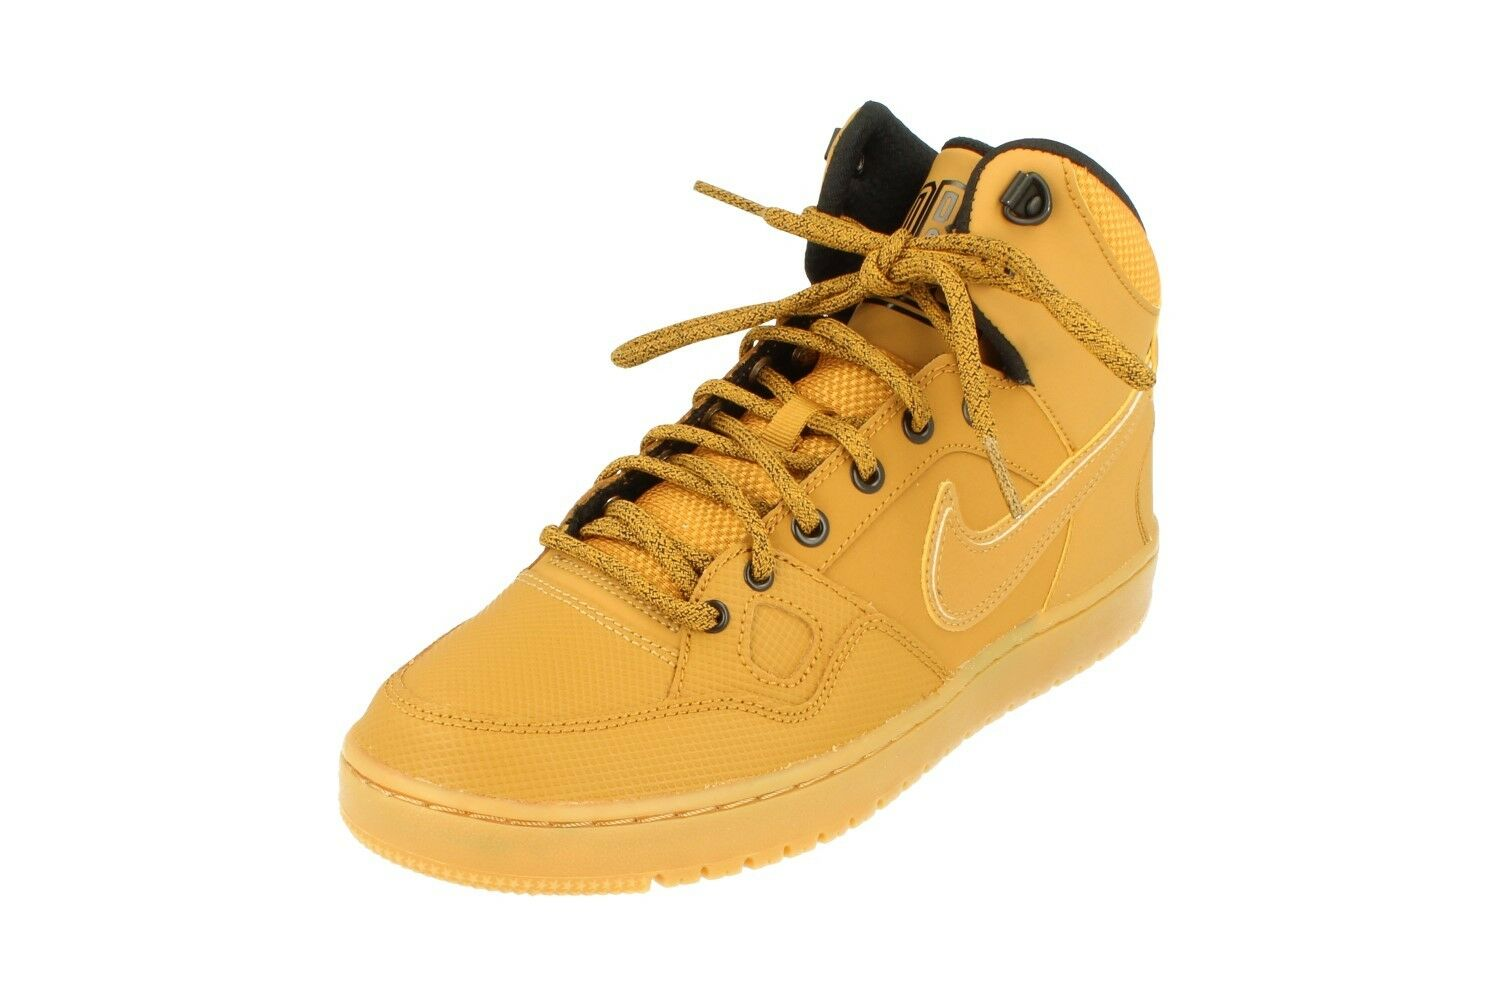 Nike Son Of Force Top Mid Winter Hommes Hi Top Force Trainers 807242 Baskets Chaussures 770 0962b3